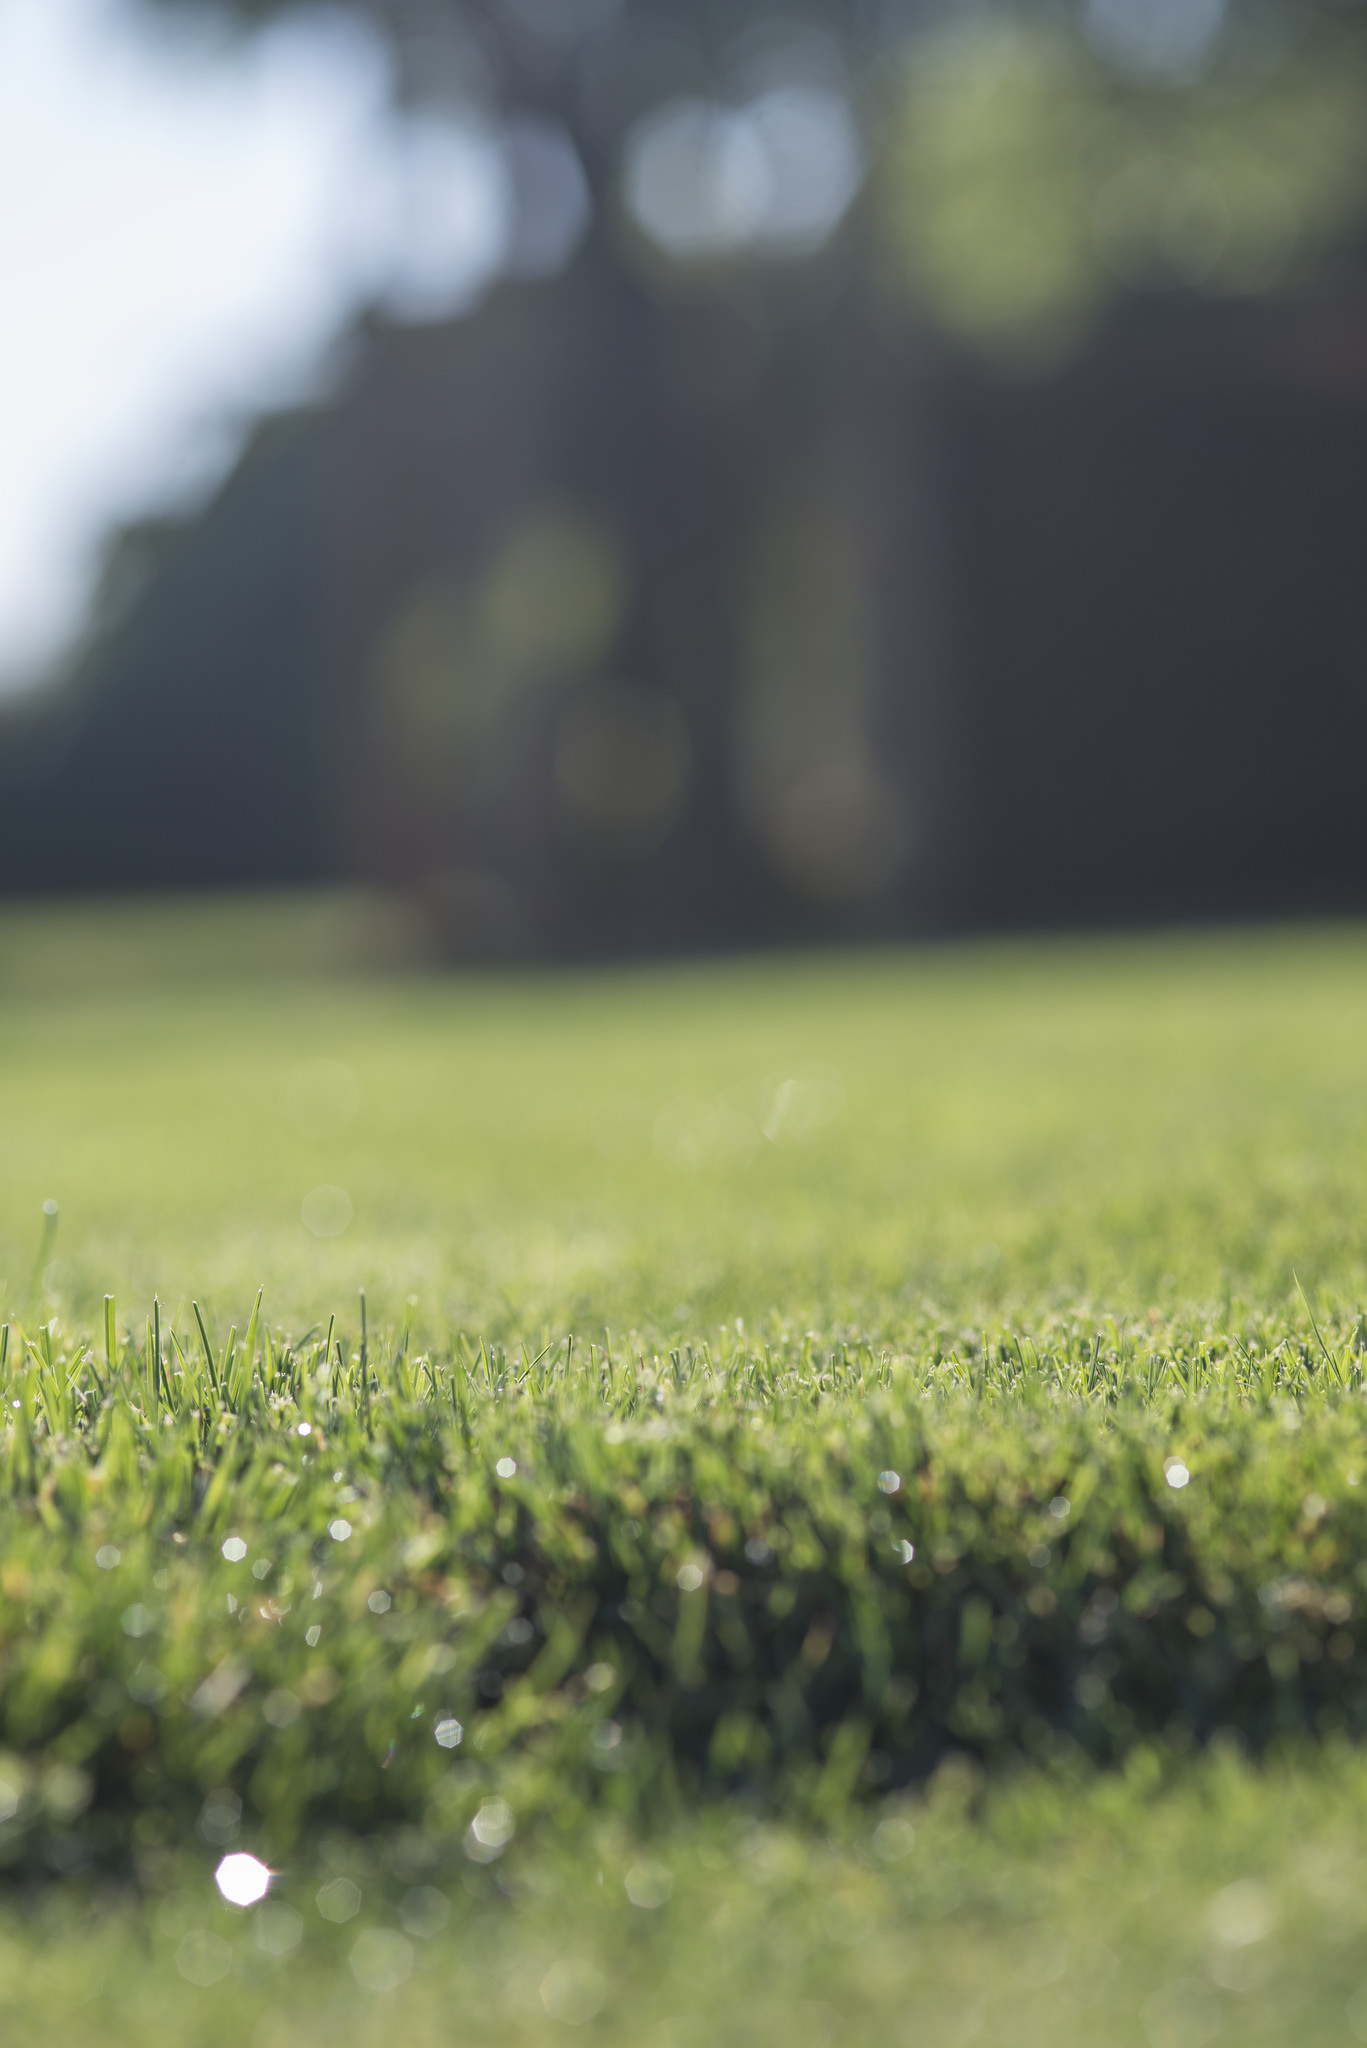 Establish a lush lawn by renovating or planting in early fall